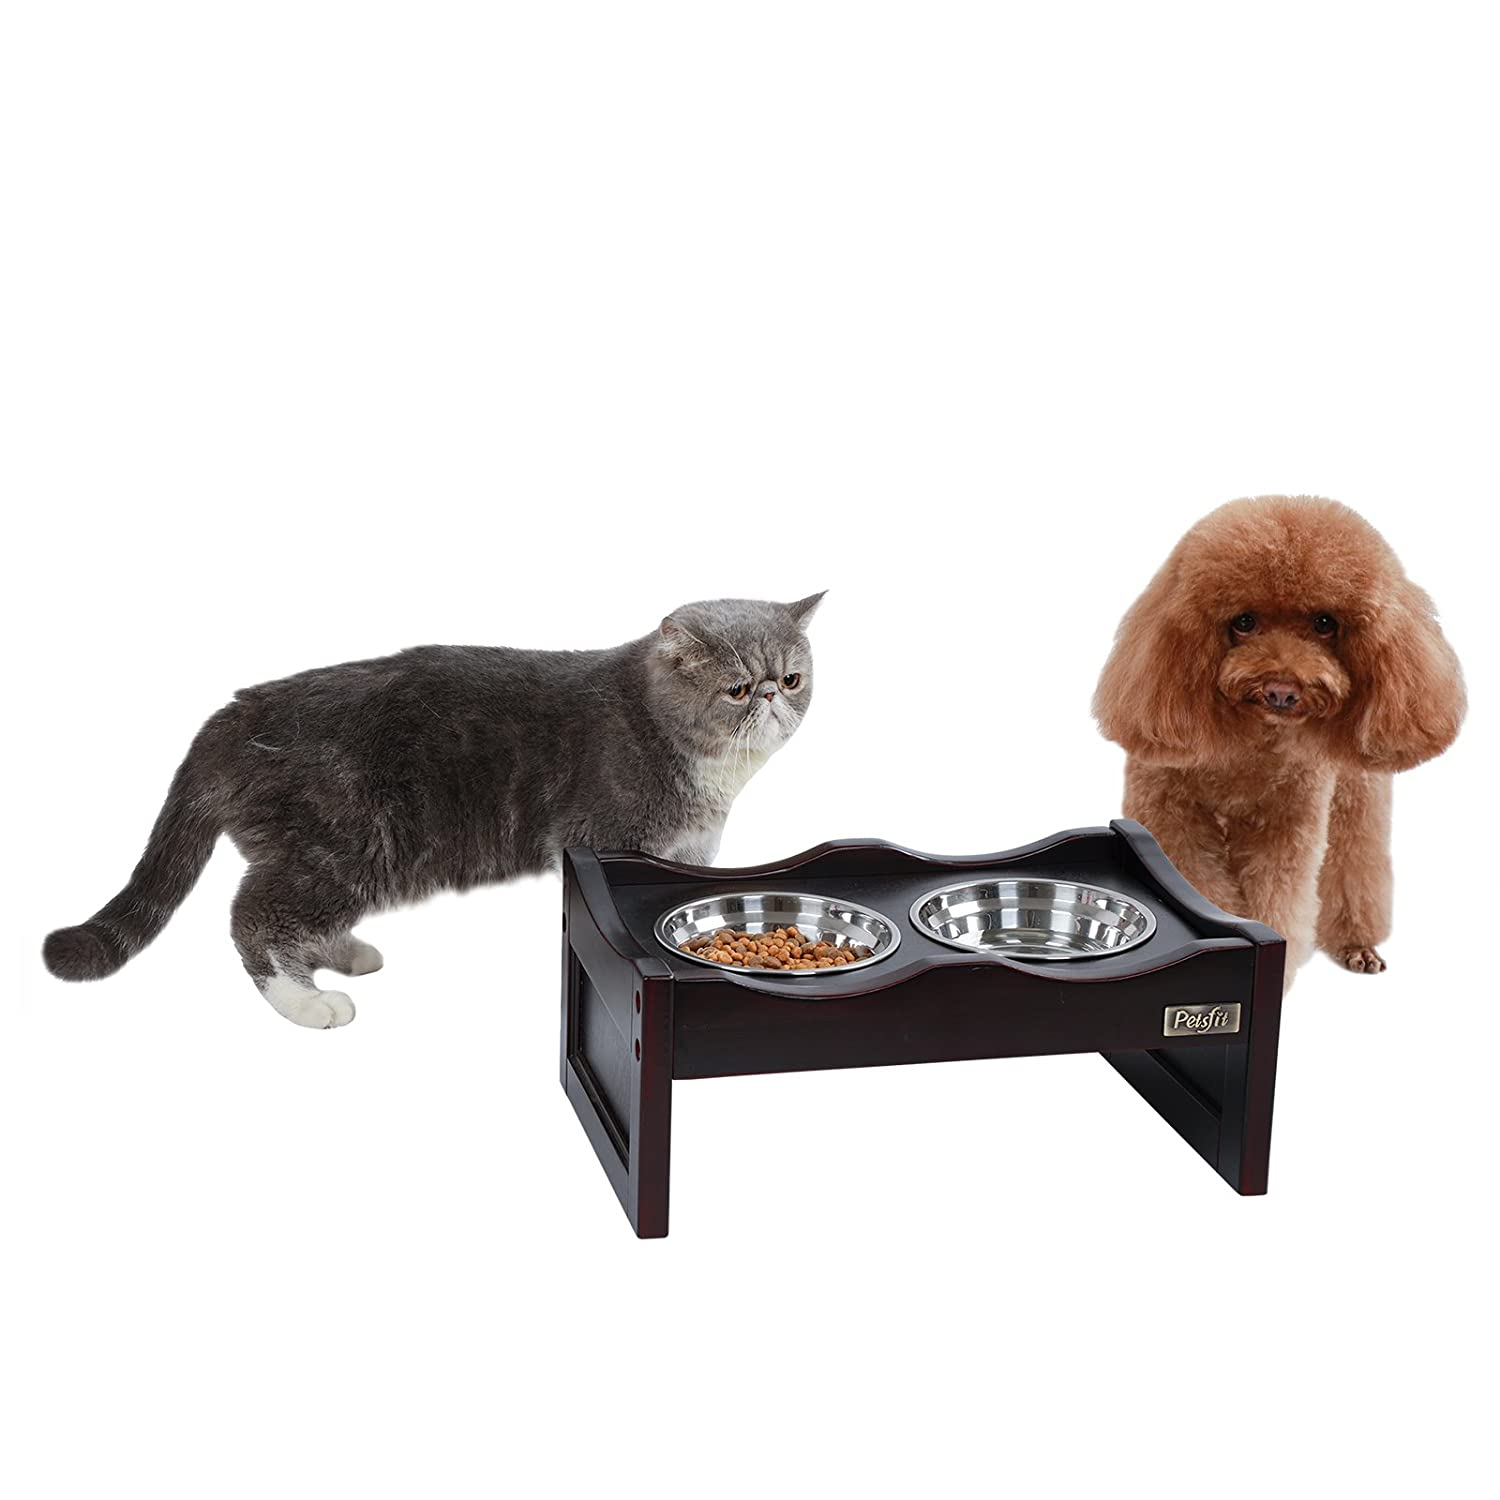 Espresso 15.7\ Espresso 15.7\ Petsfit Elevated Pet Dog Feeder 2 Stainless Steel Bowl For Small Dog 15.7  x 10.6  x 6.3